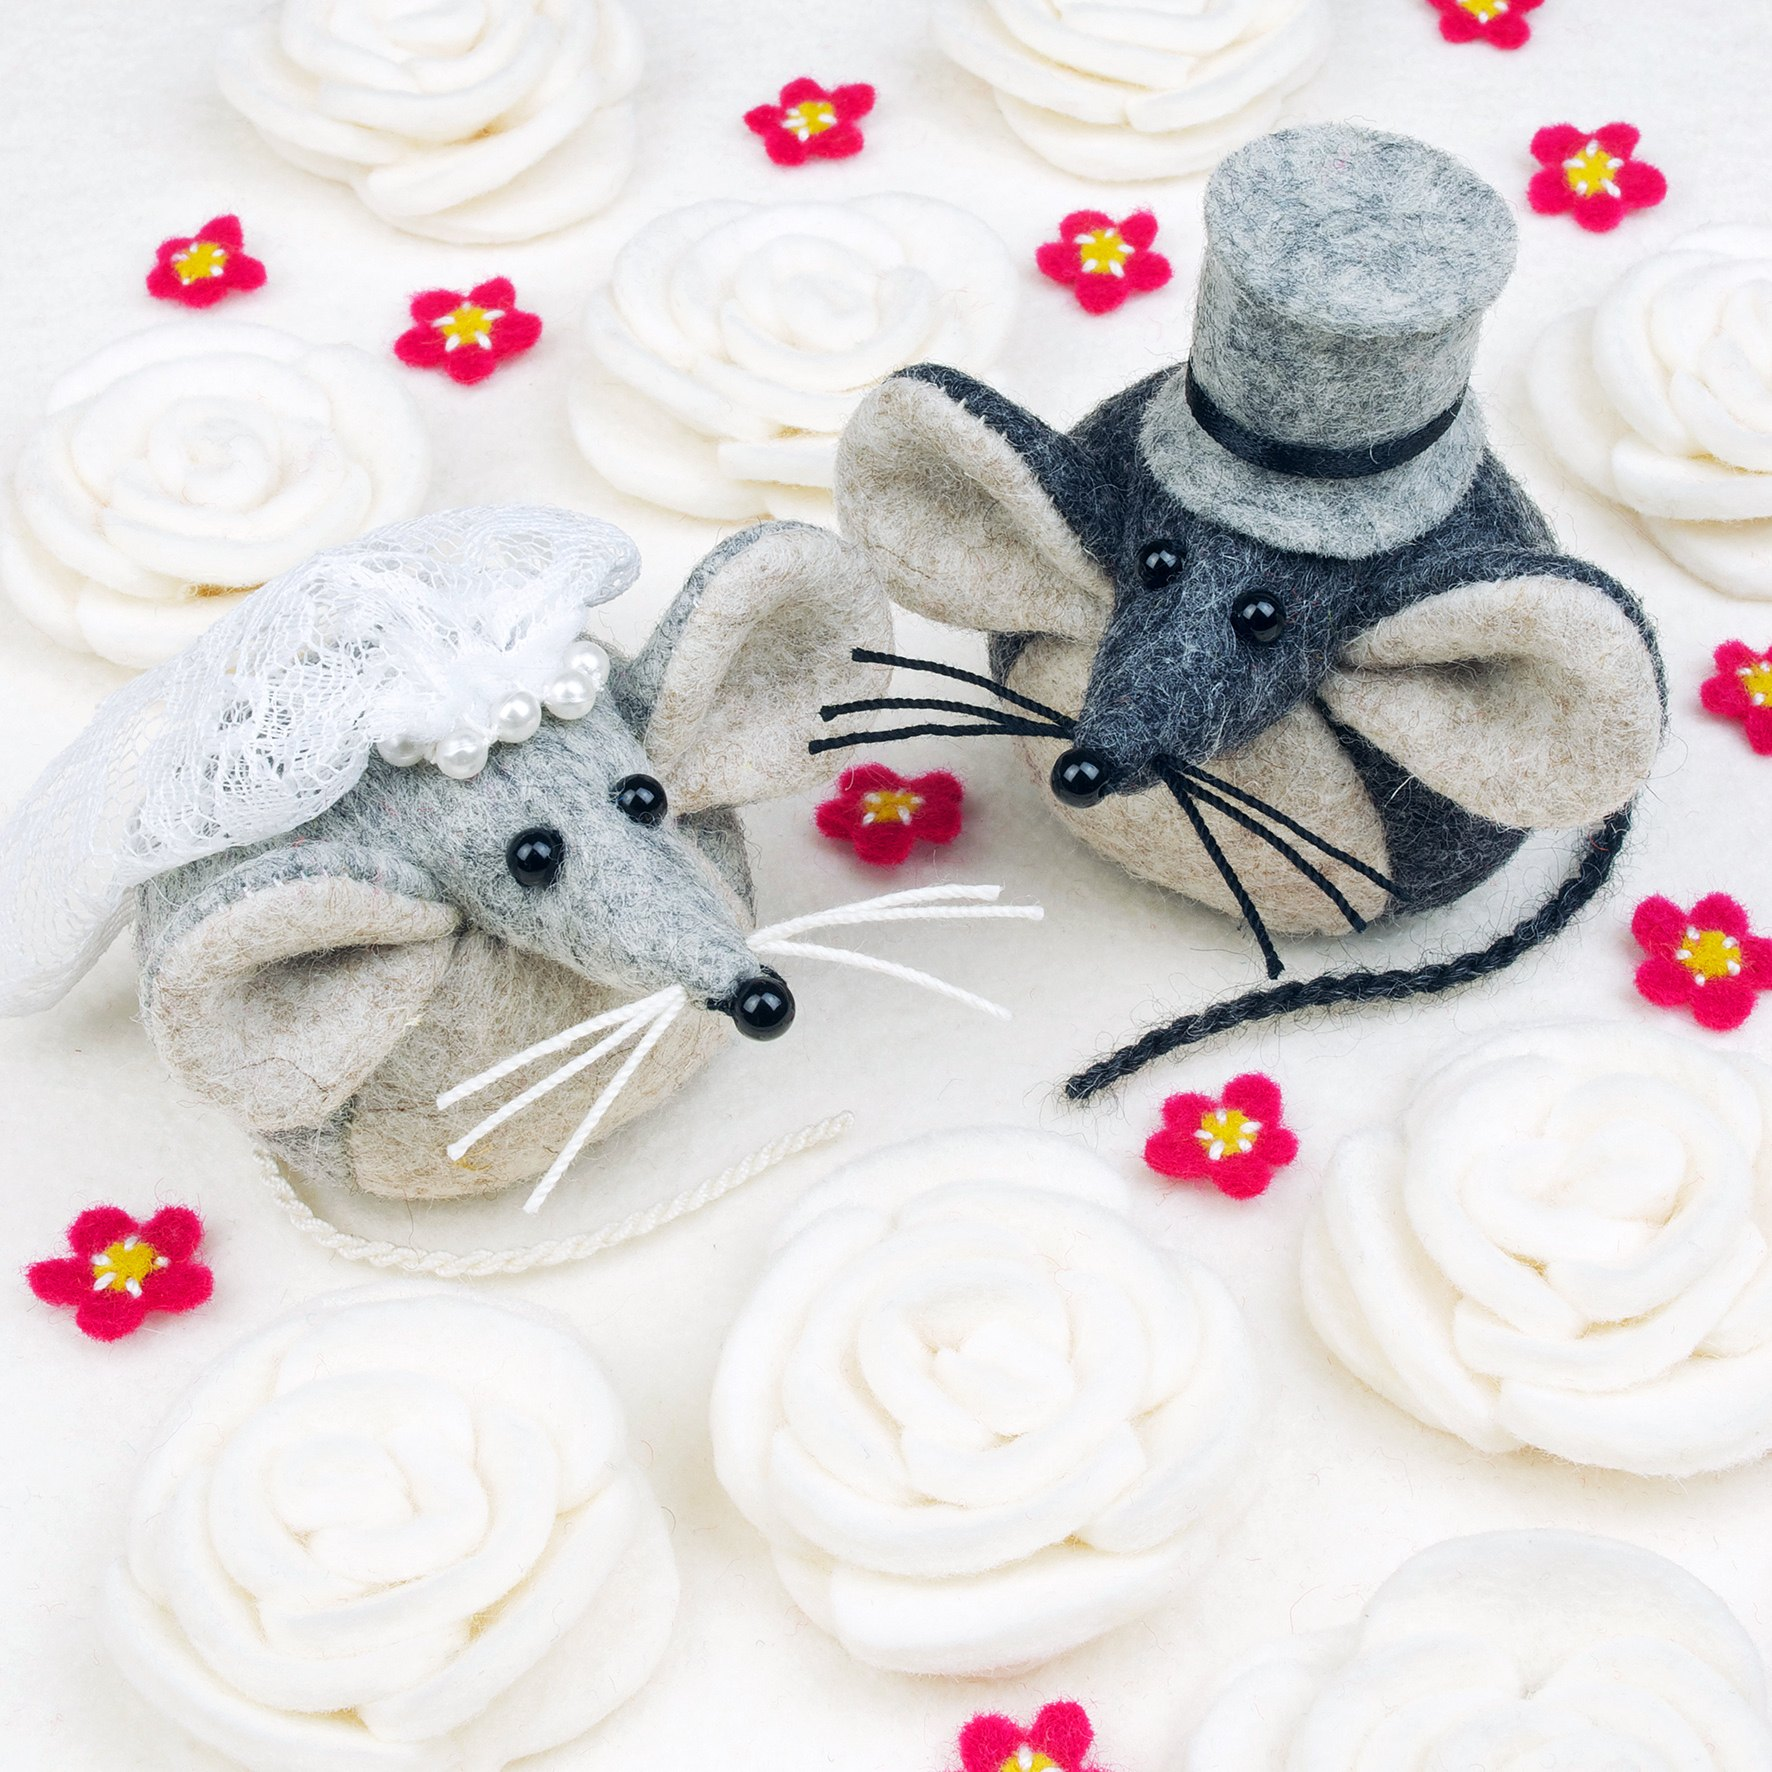 Felt mouse greeting card.